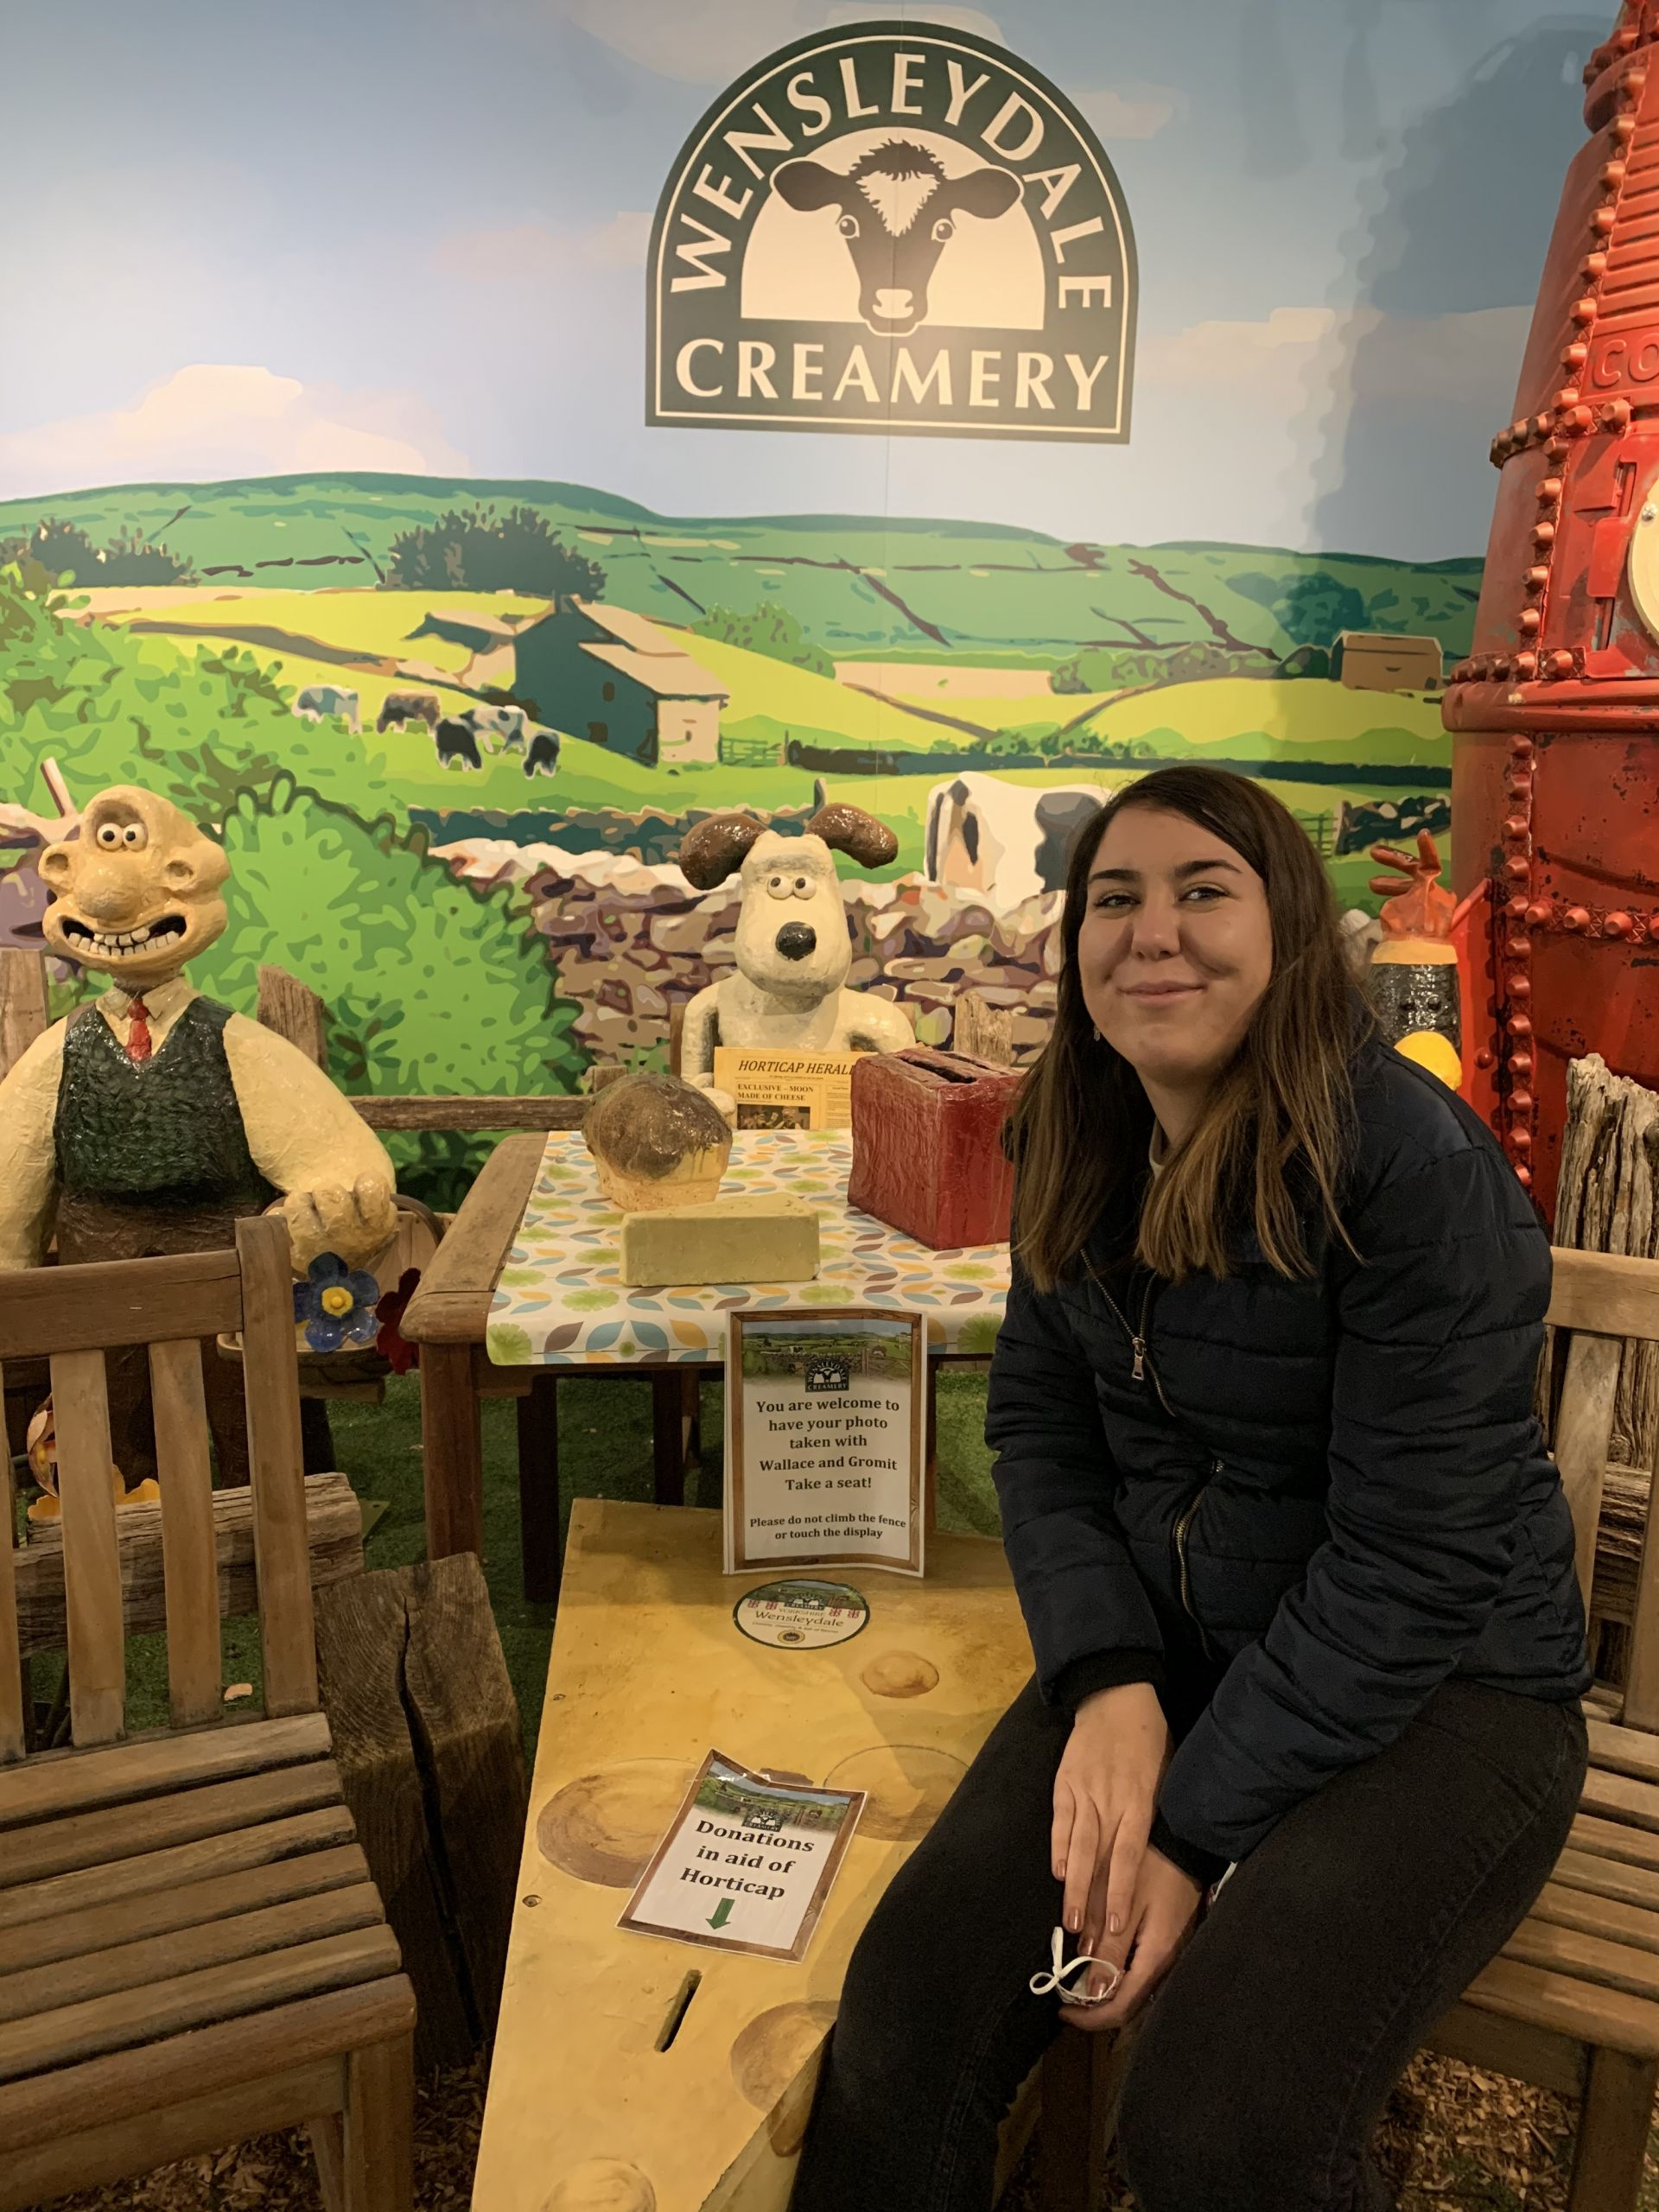 Wallace and Gromit at Wensleydale Creamery